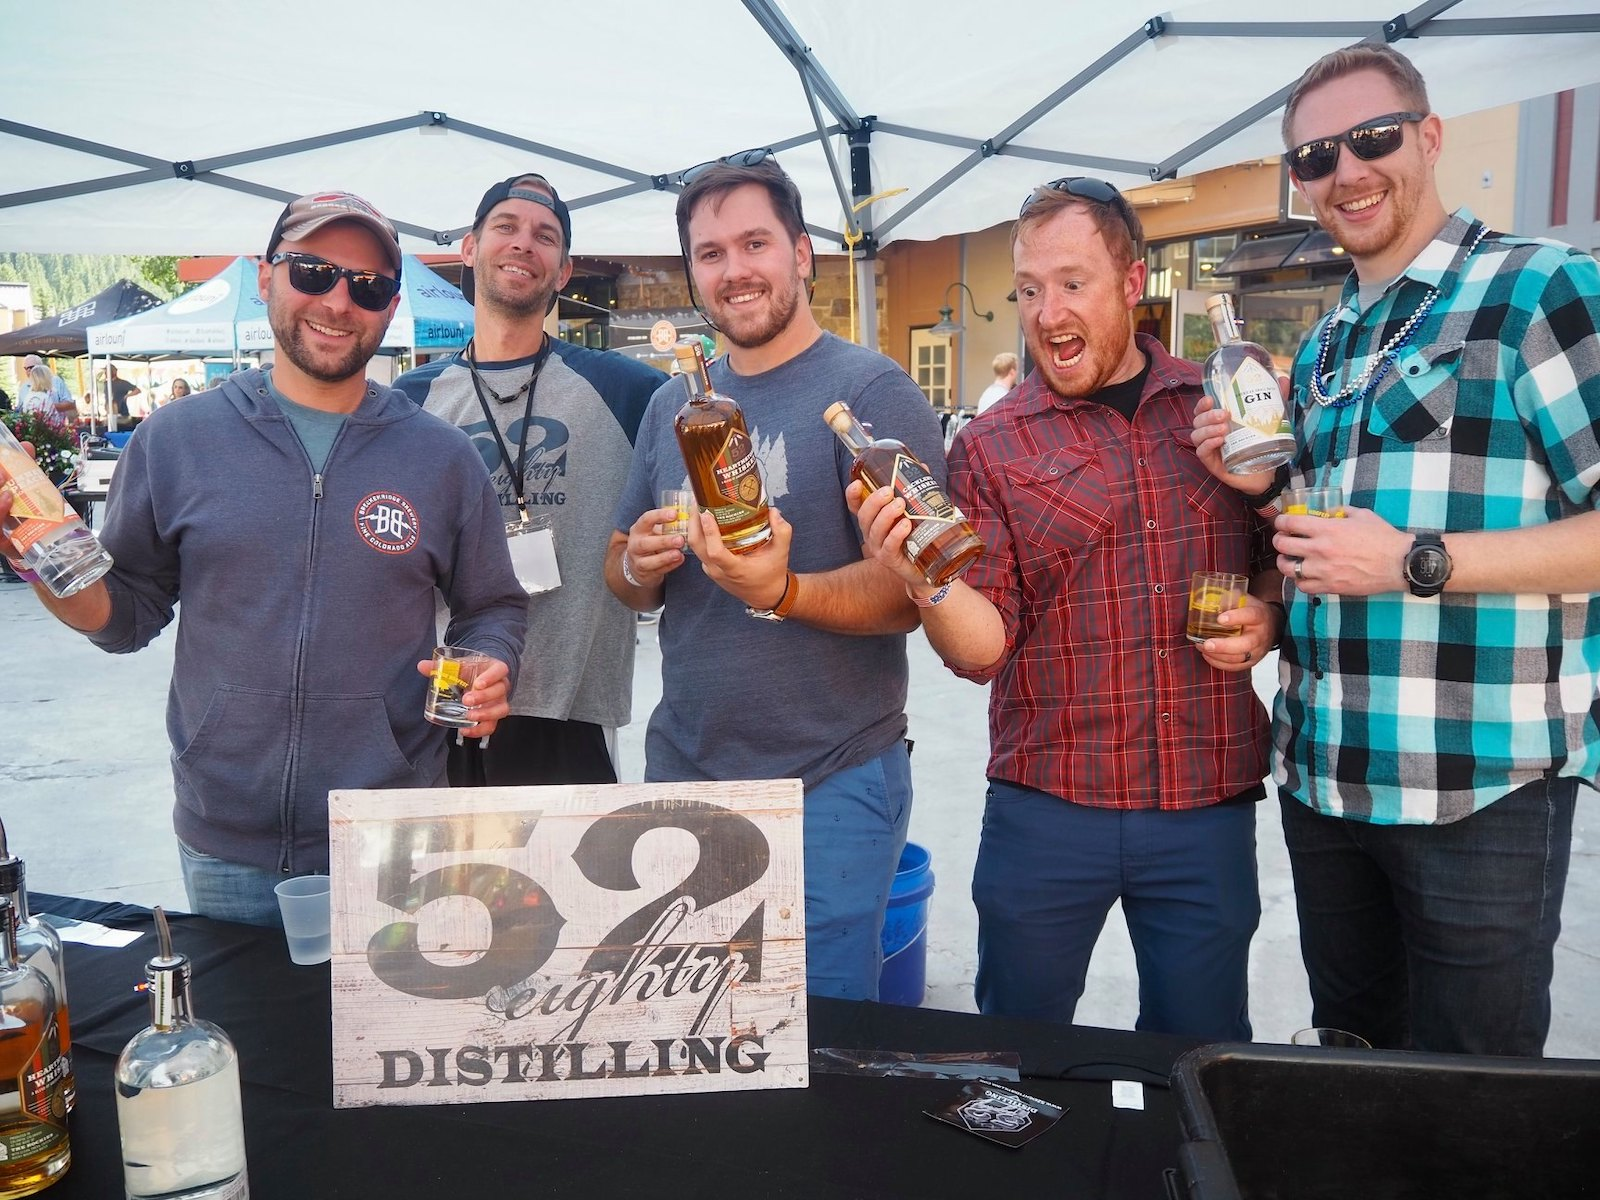 Image of a group of men at the 52 Eighty Distilling booth at Breckenridge Hogfest in Colorado